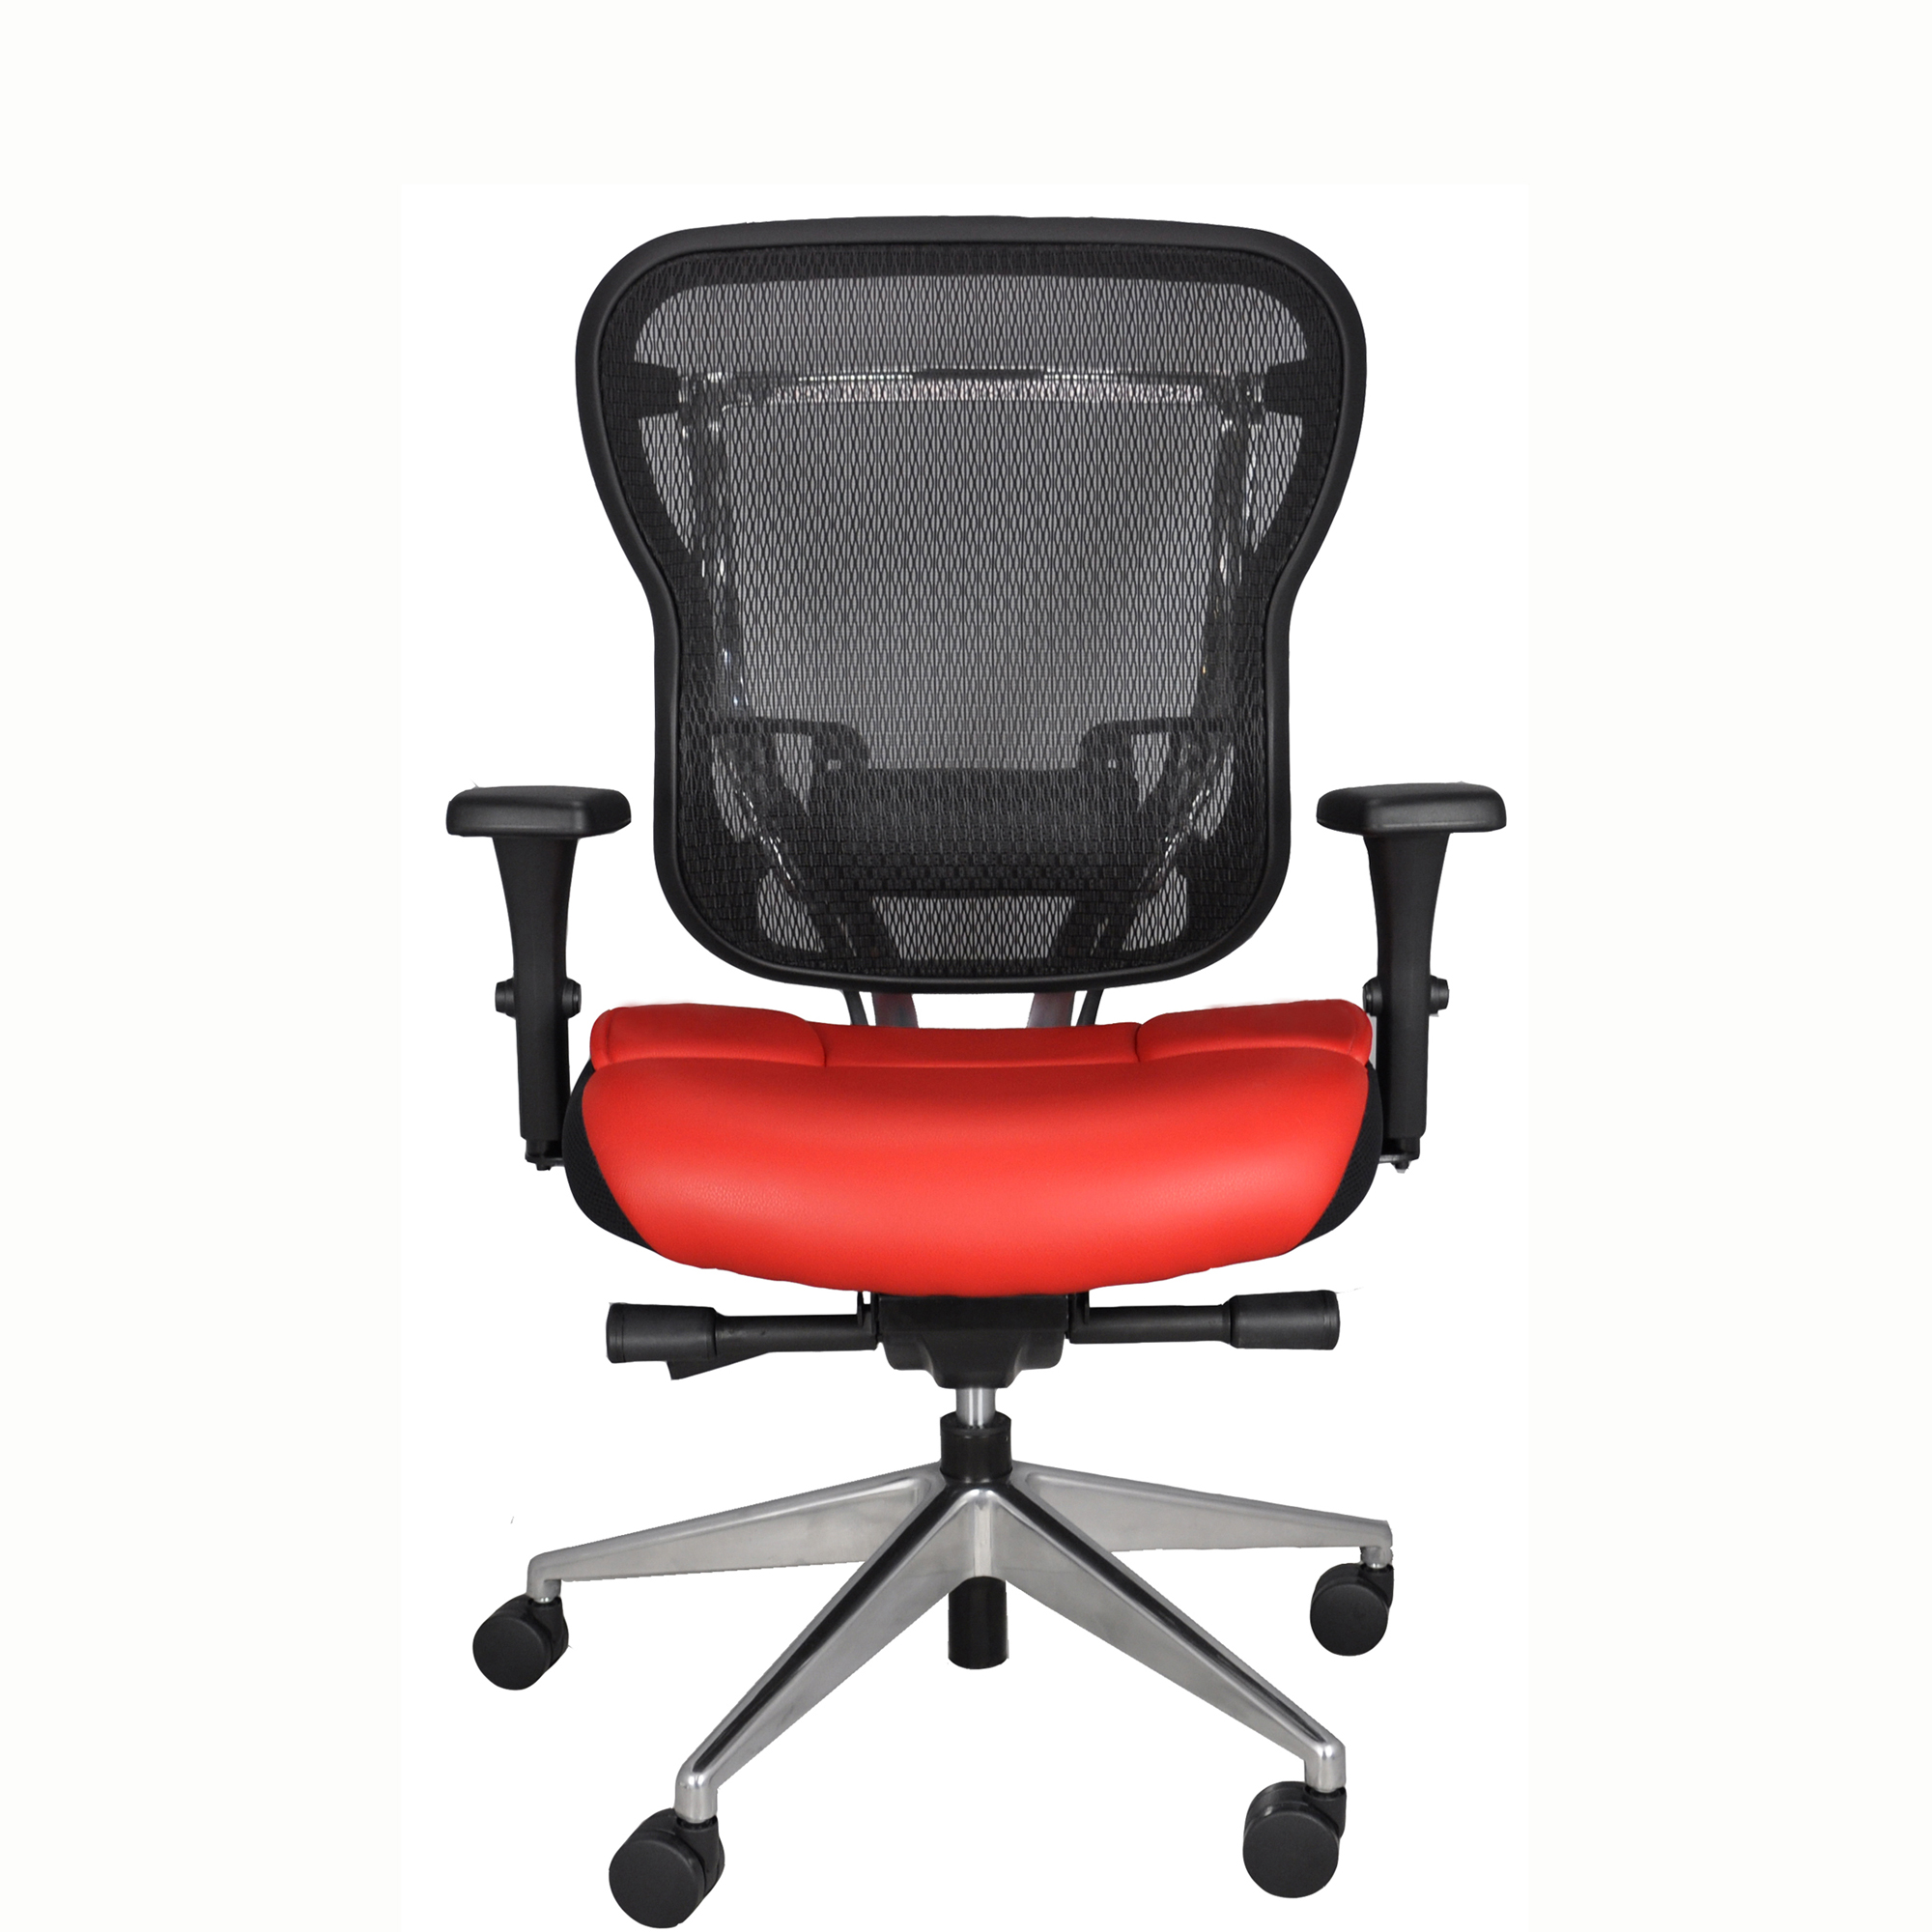 Home Office Chair With Leather Seat